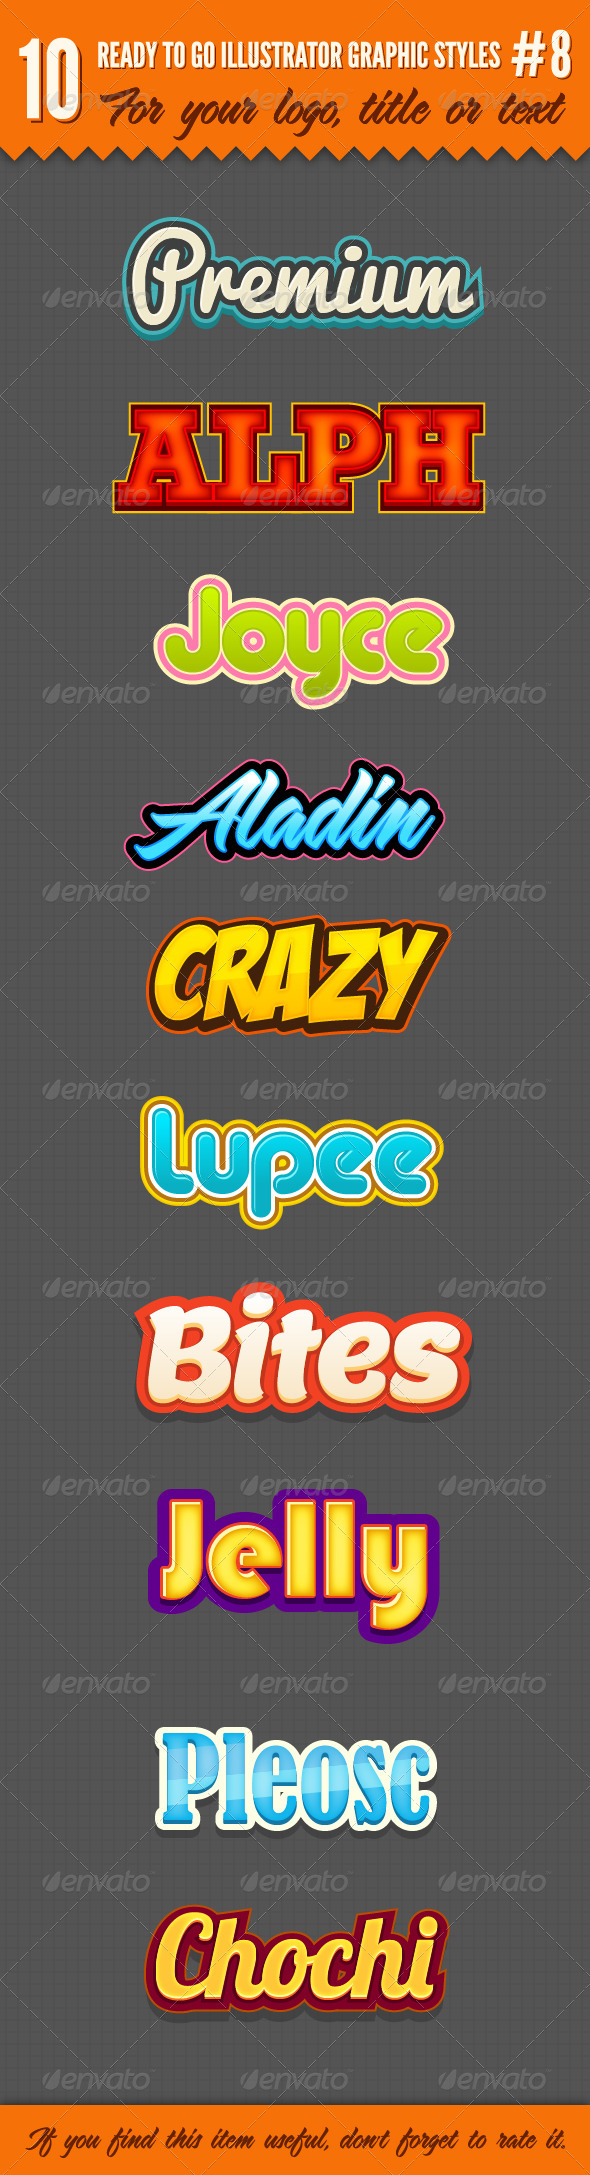 GraphicRiver 10 Logo Graphic Styles #8 5330851